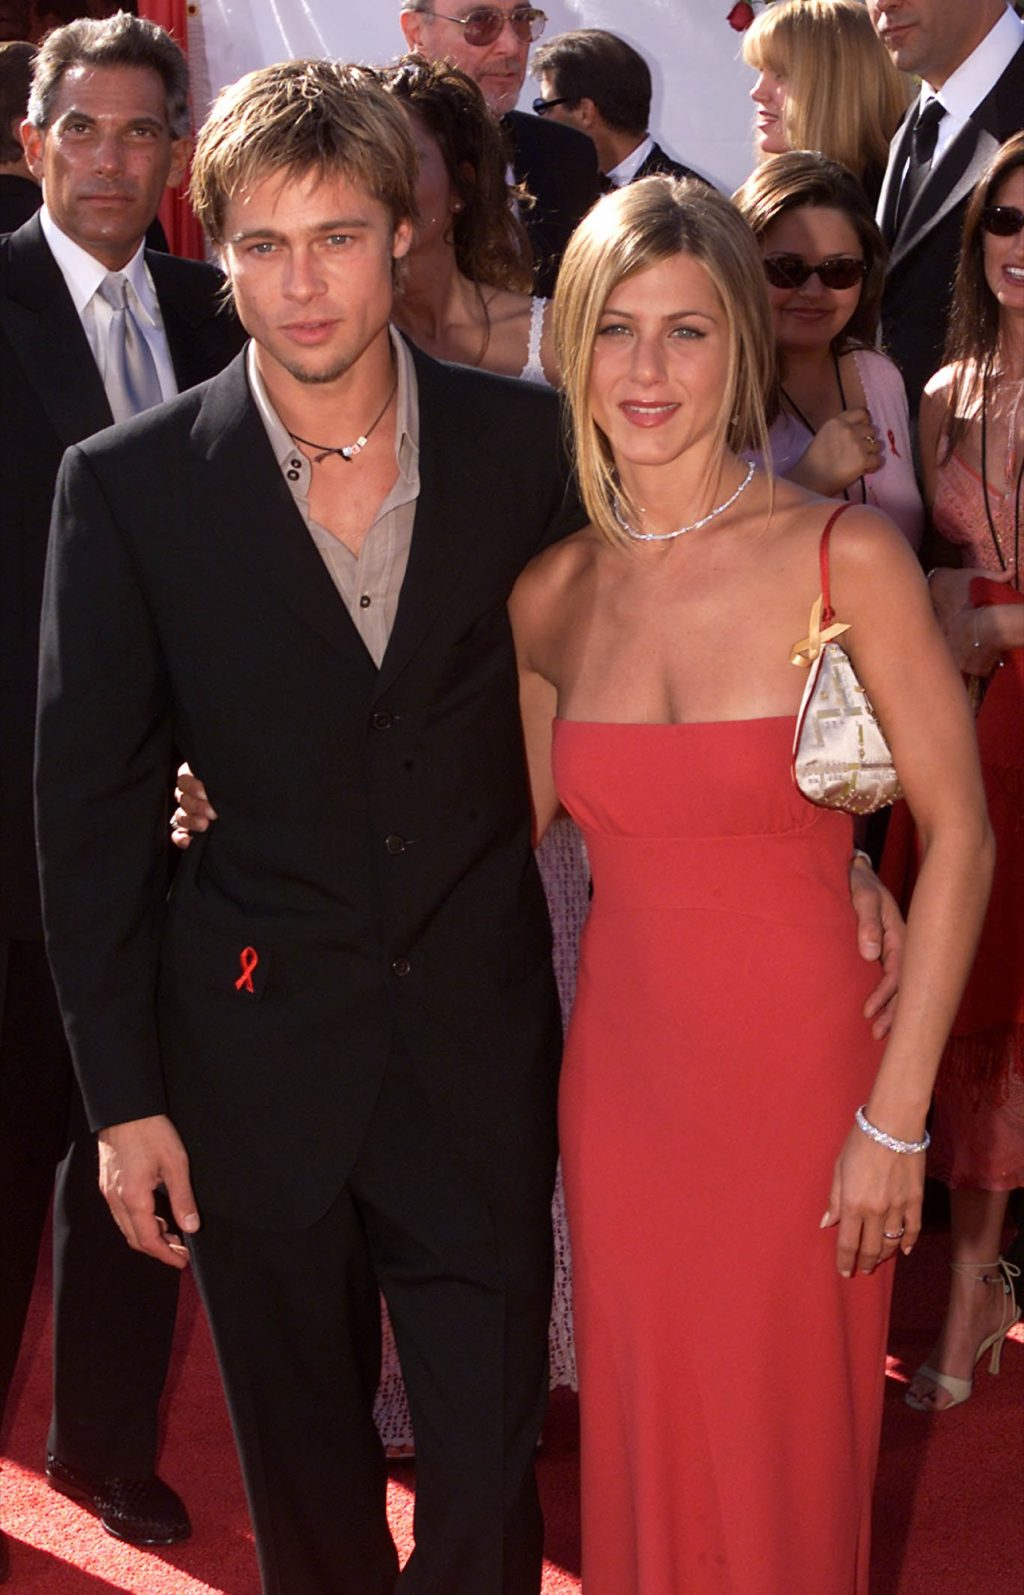 #CoupleGoals: Are These the Most Iconic Duos in Red-Carpet History?